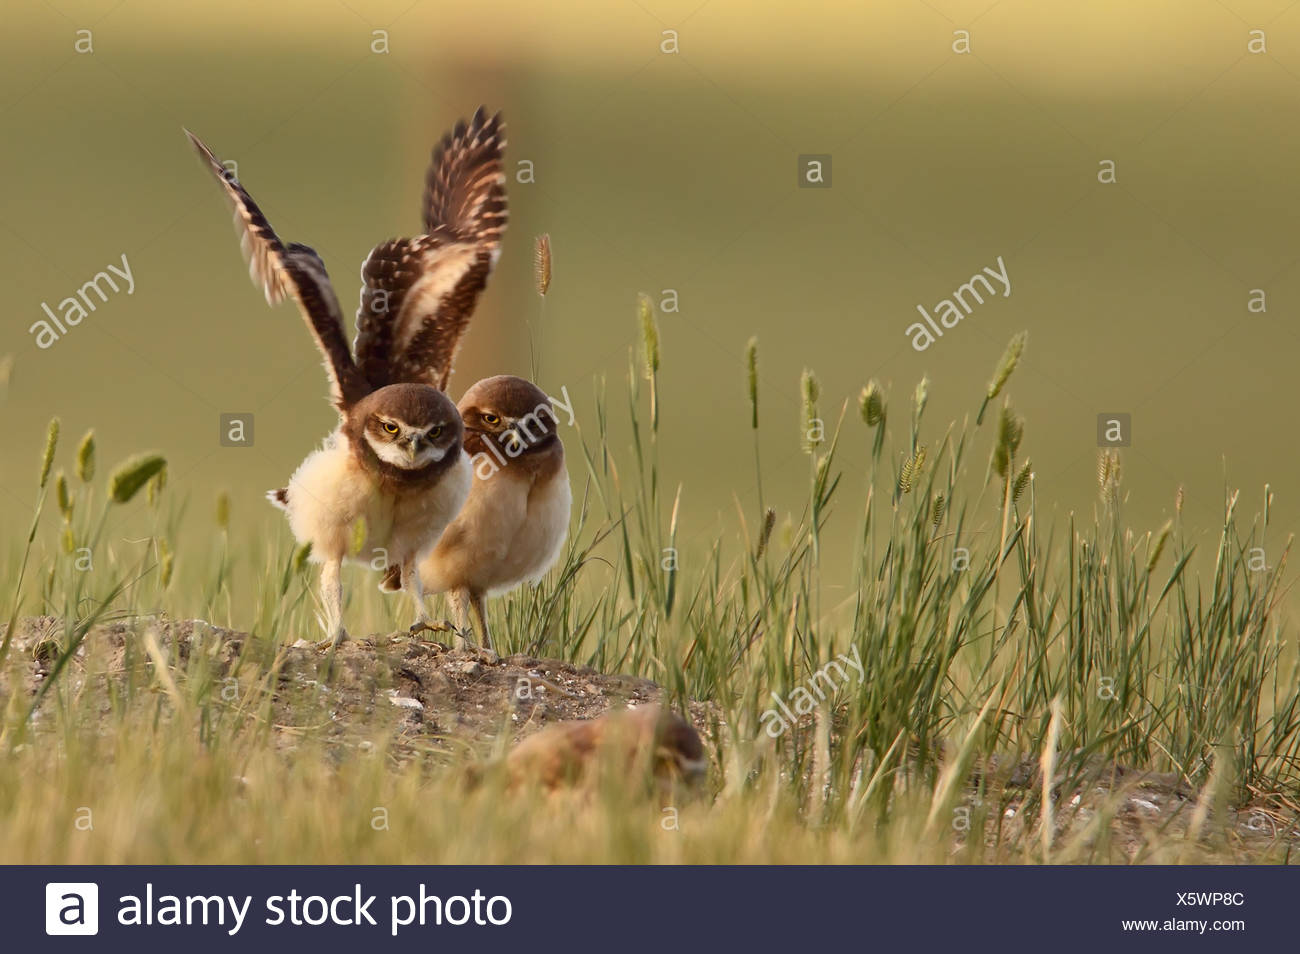 Digitally enhanced image with painterly effect of Burrowing owl stretching wings, Grasslands National Park, Saskatchewan - Stock Image